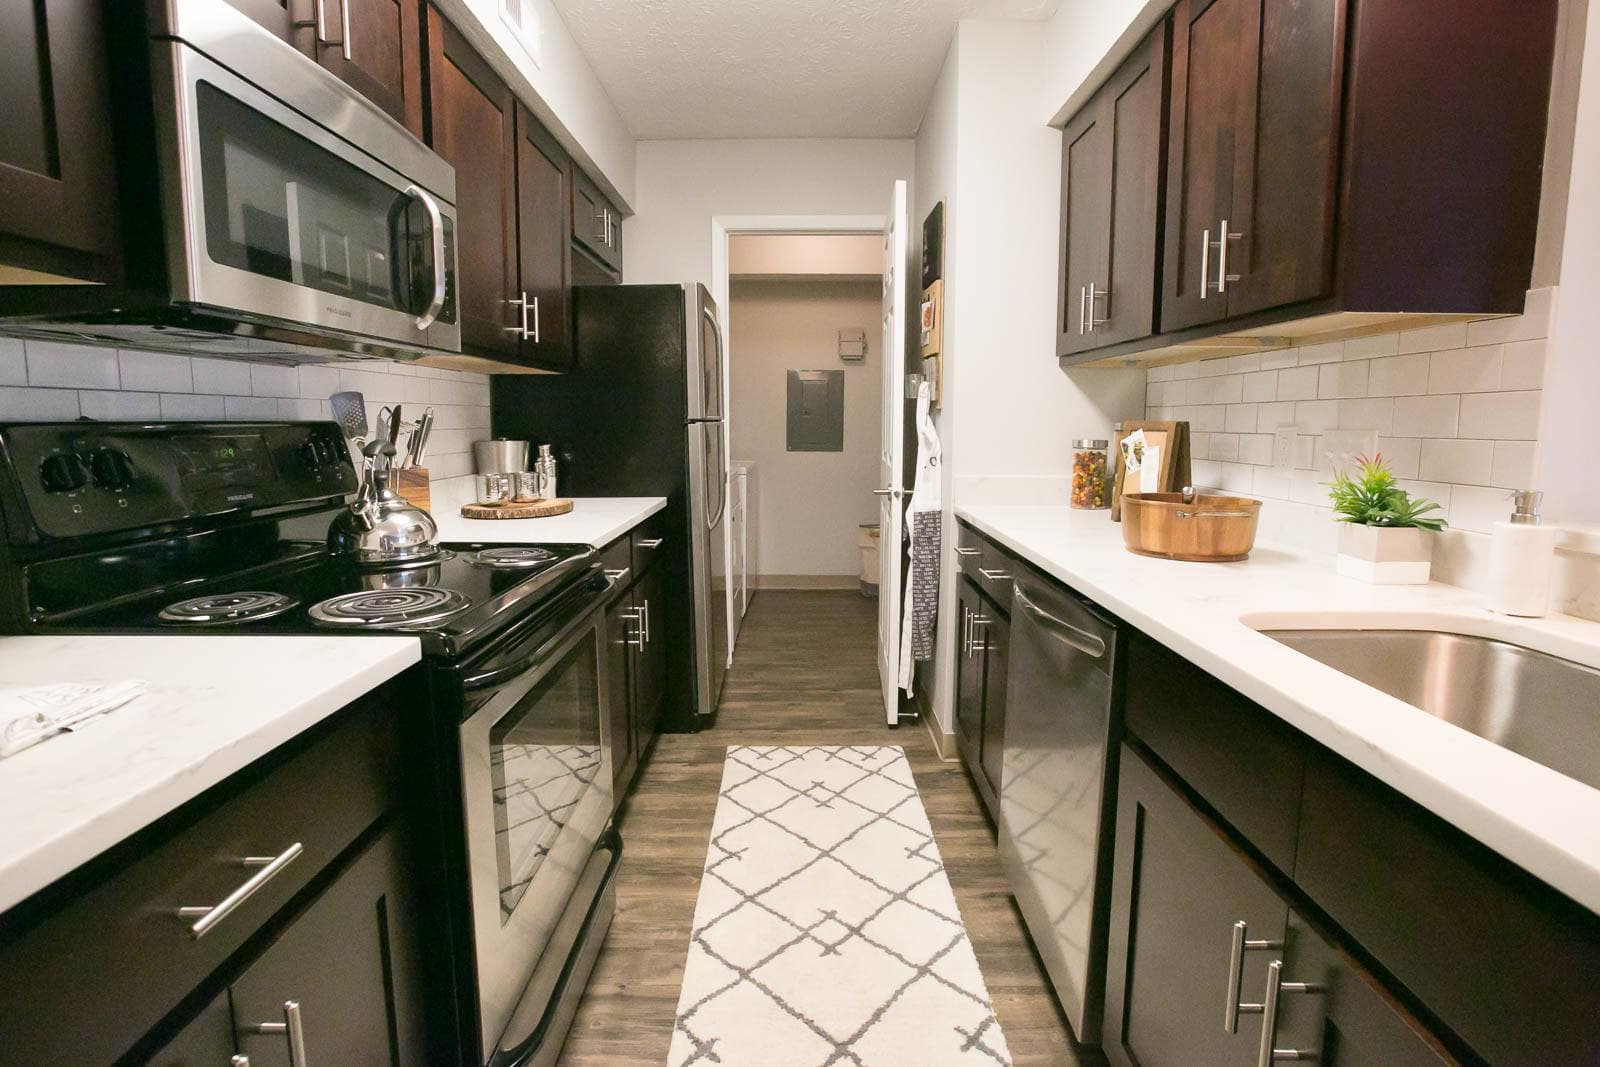 New appliances at apartments in Westlake